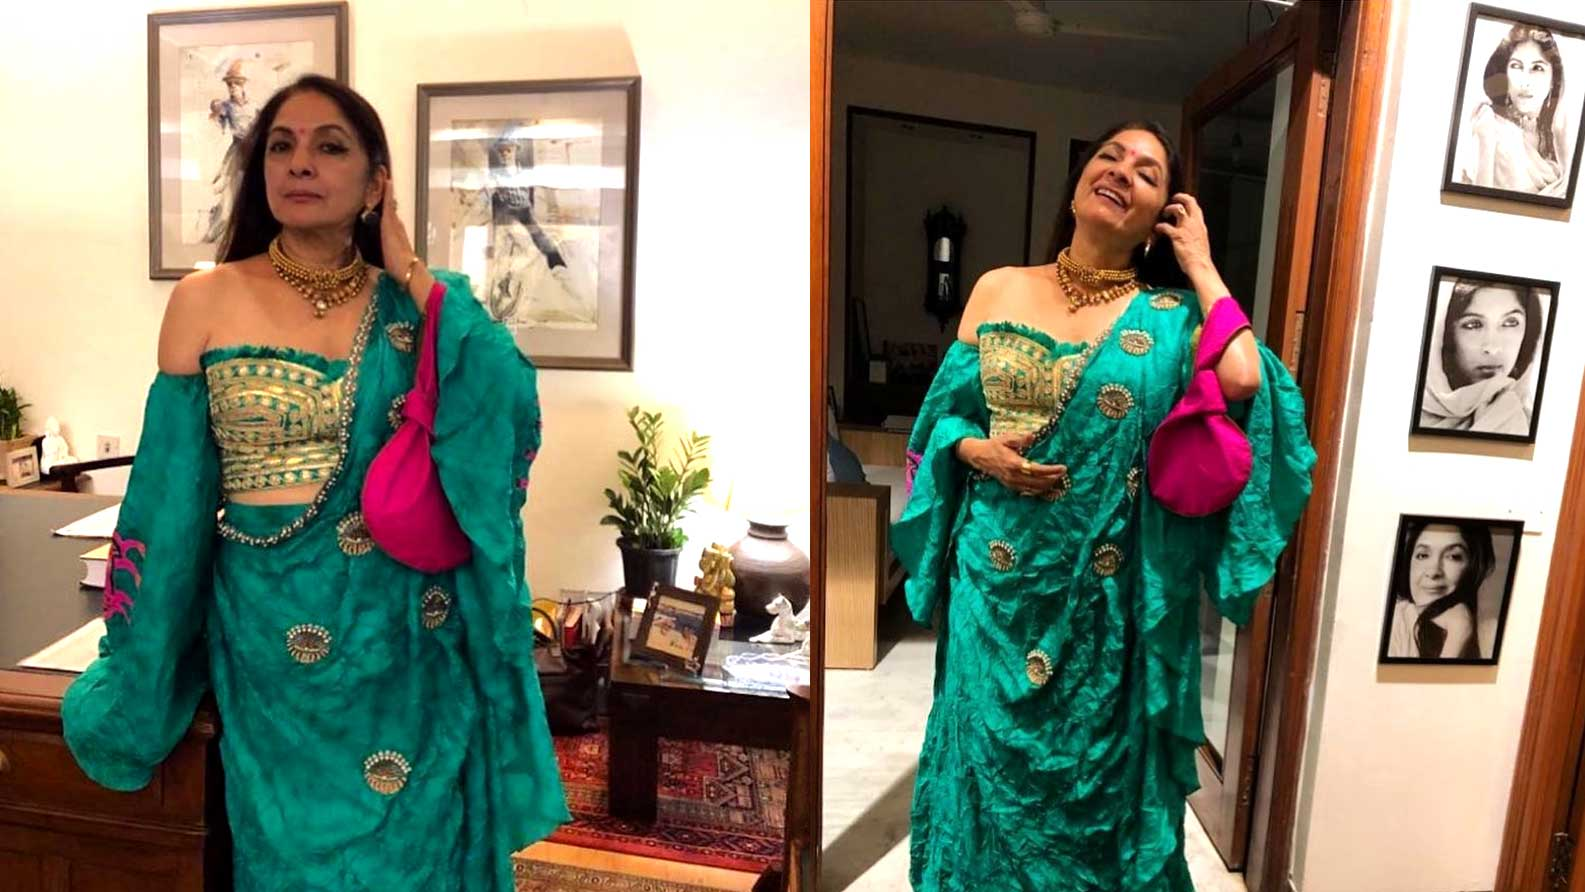 Neena Gupta makes heads turn in yet another gorgeous ensemble